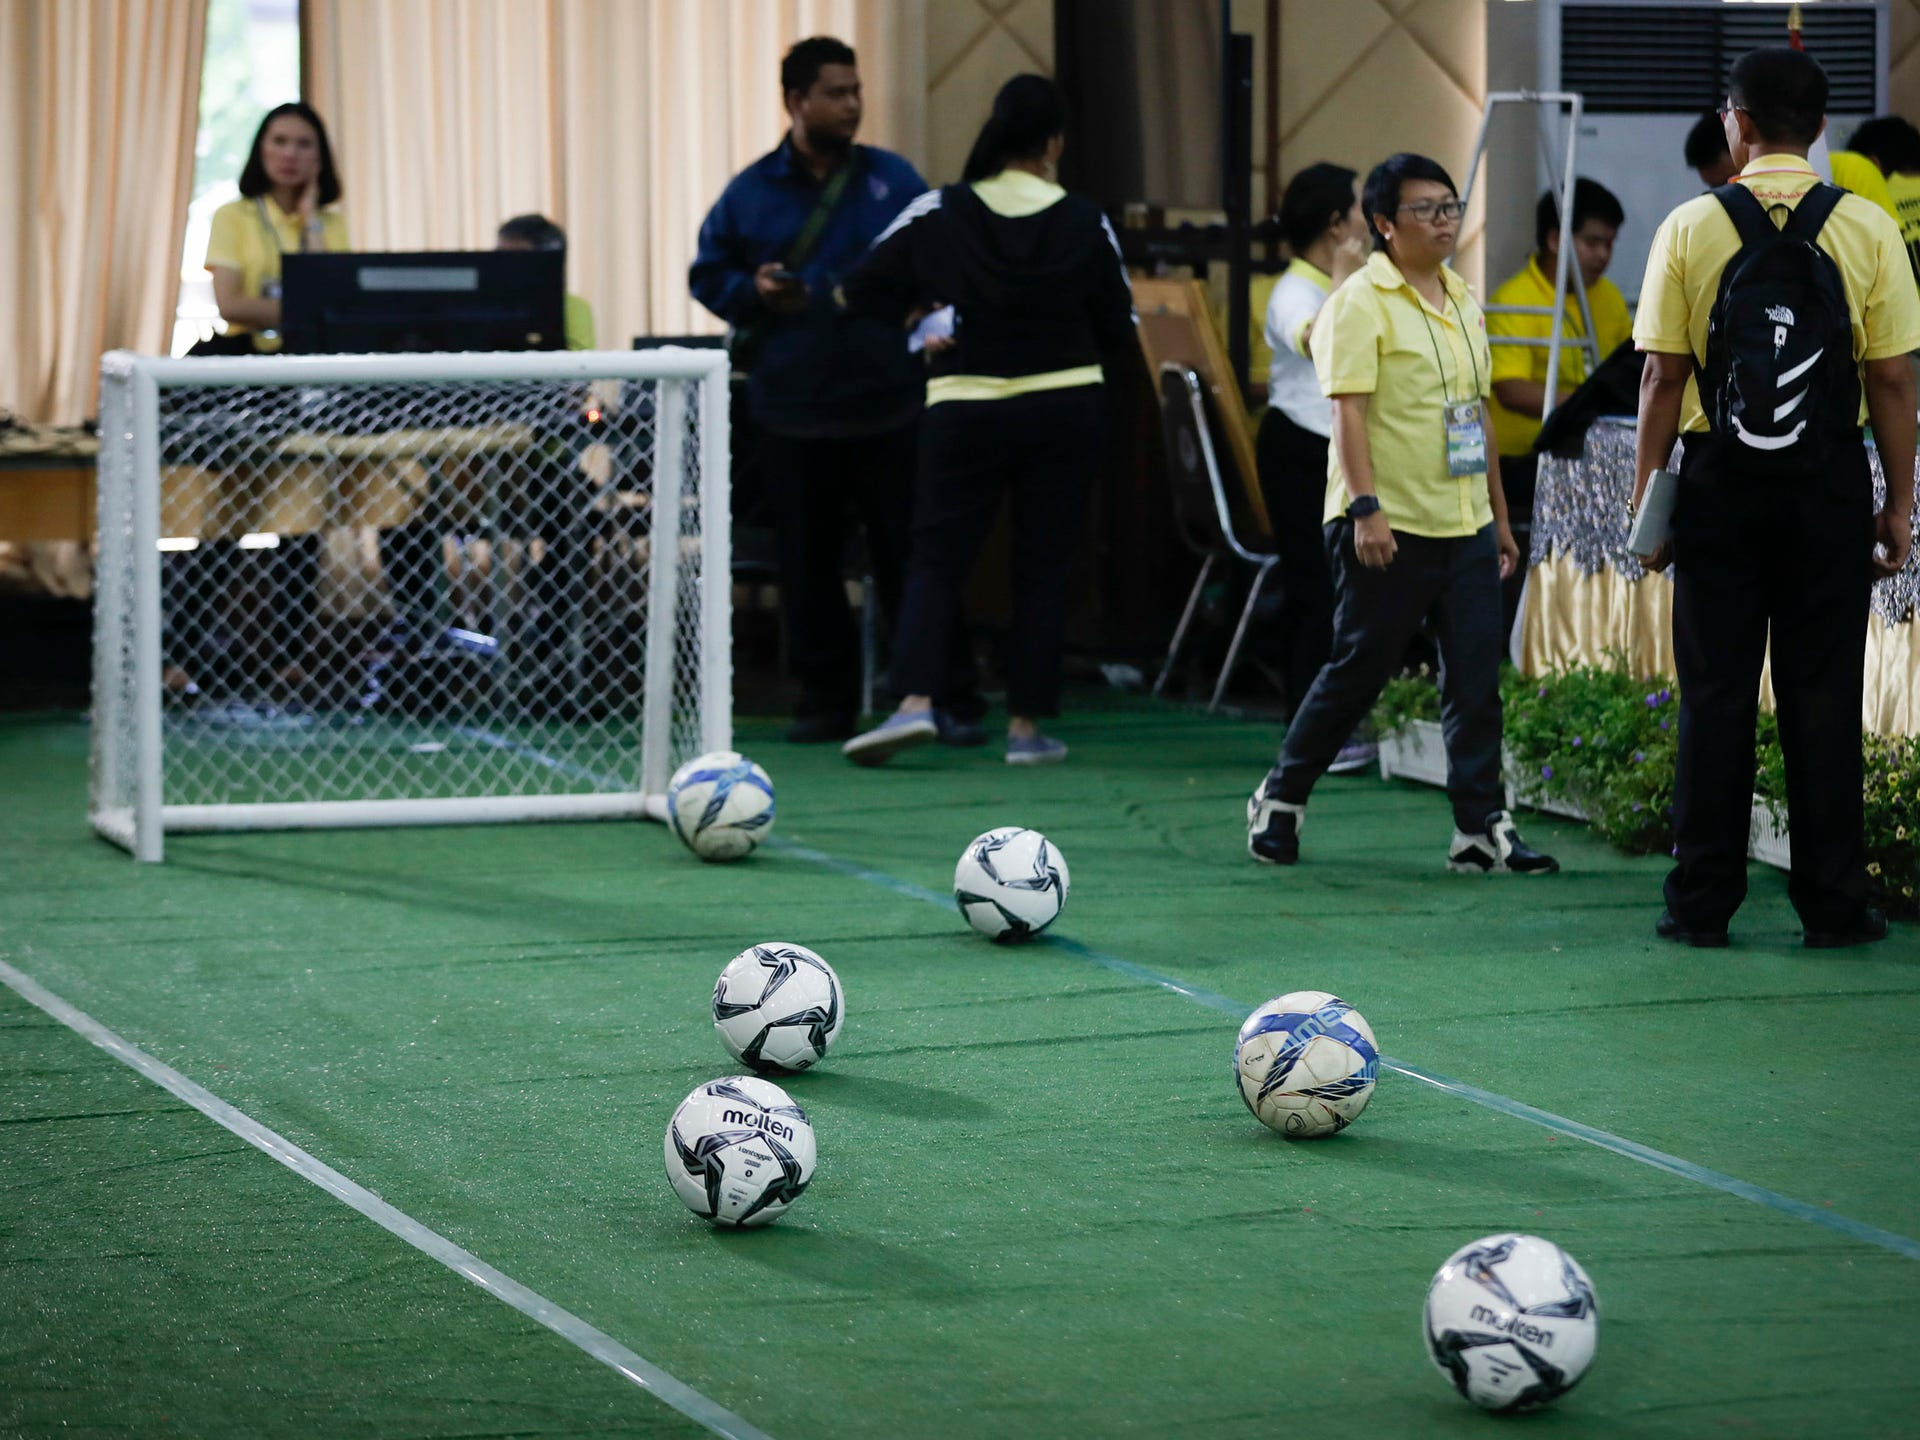 A mini soccer field being set up before a press conference